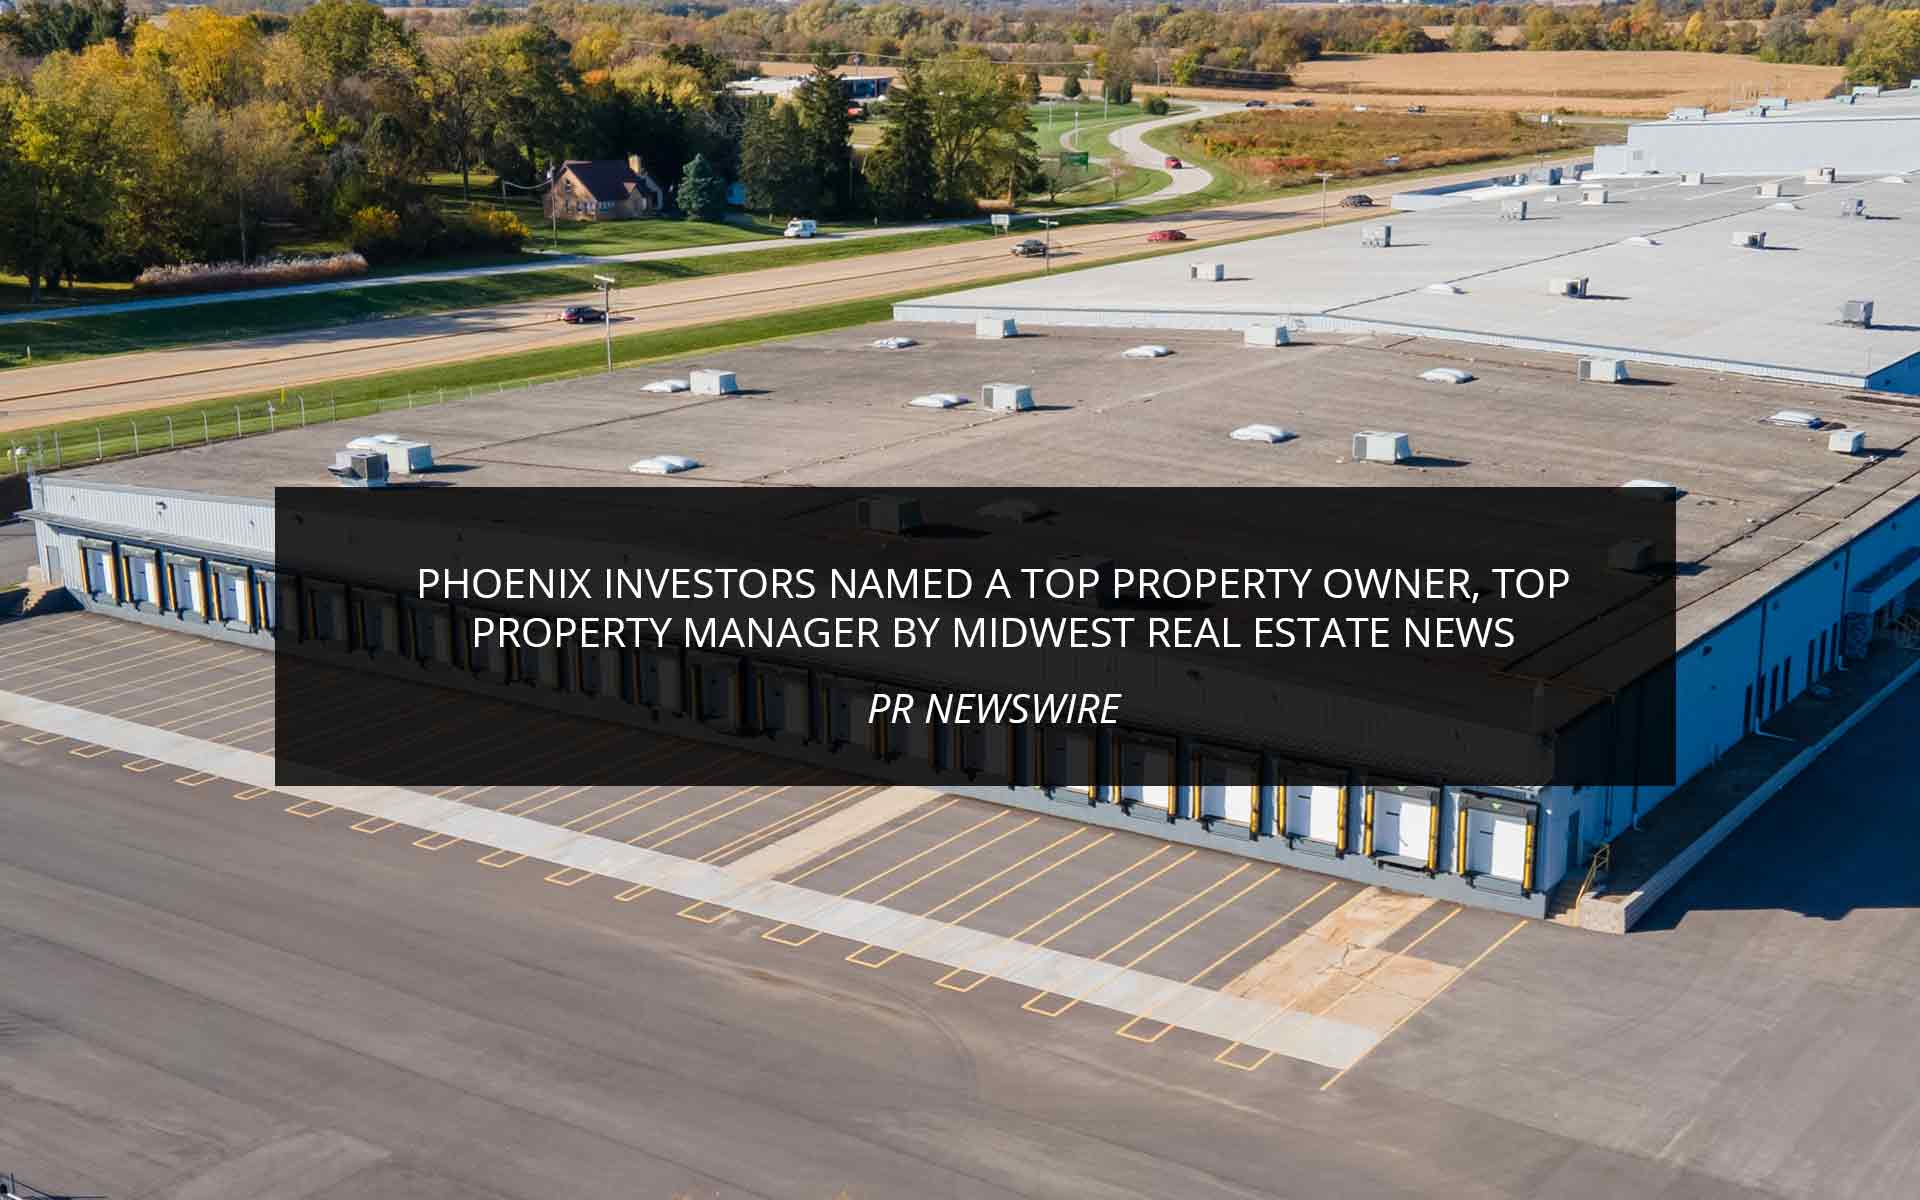 Phoenix Investors Named A Top Property Owner, Top Property Manager By Midwest Real Estate News